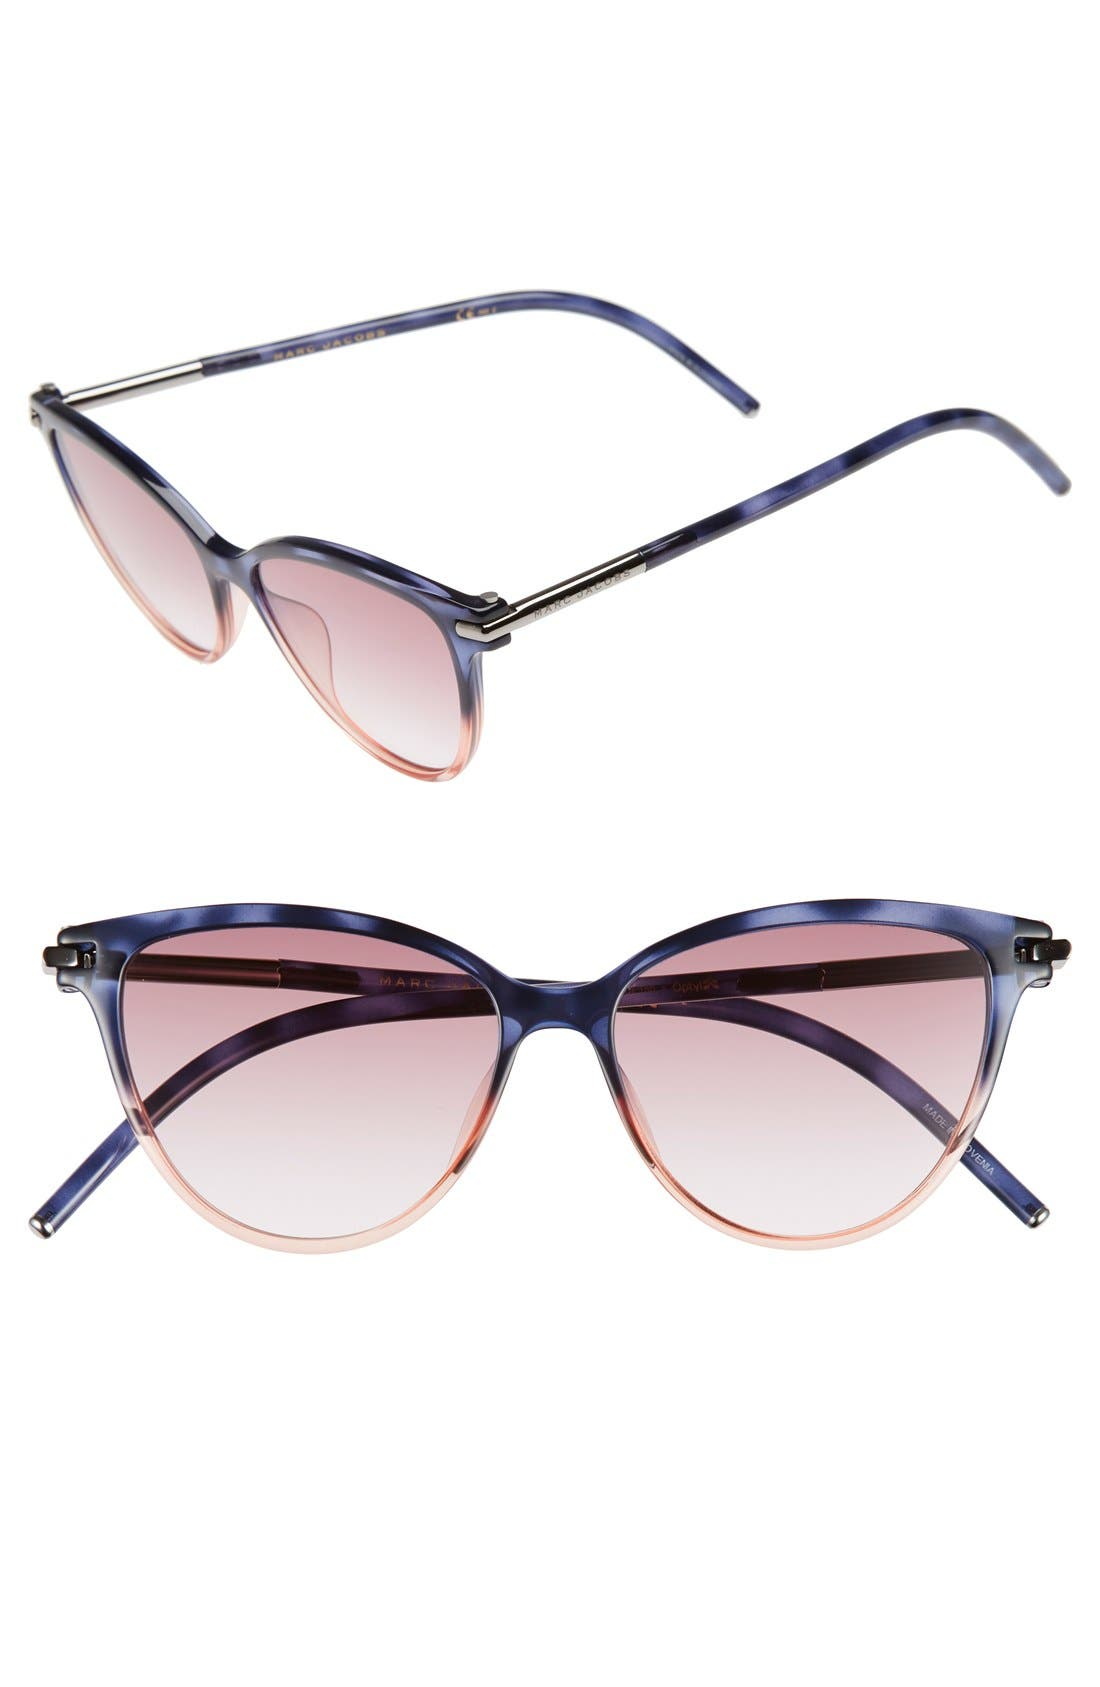 Main Image - MARC JACOBS 53mm Cat Eye Sunglasses